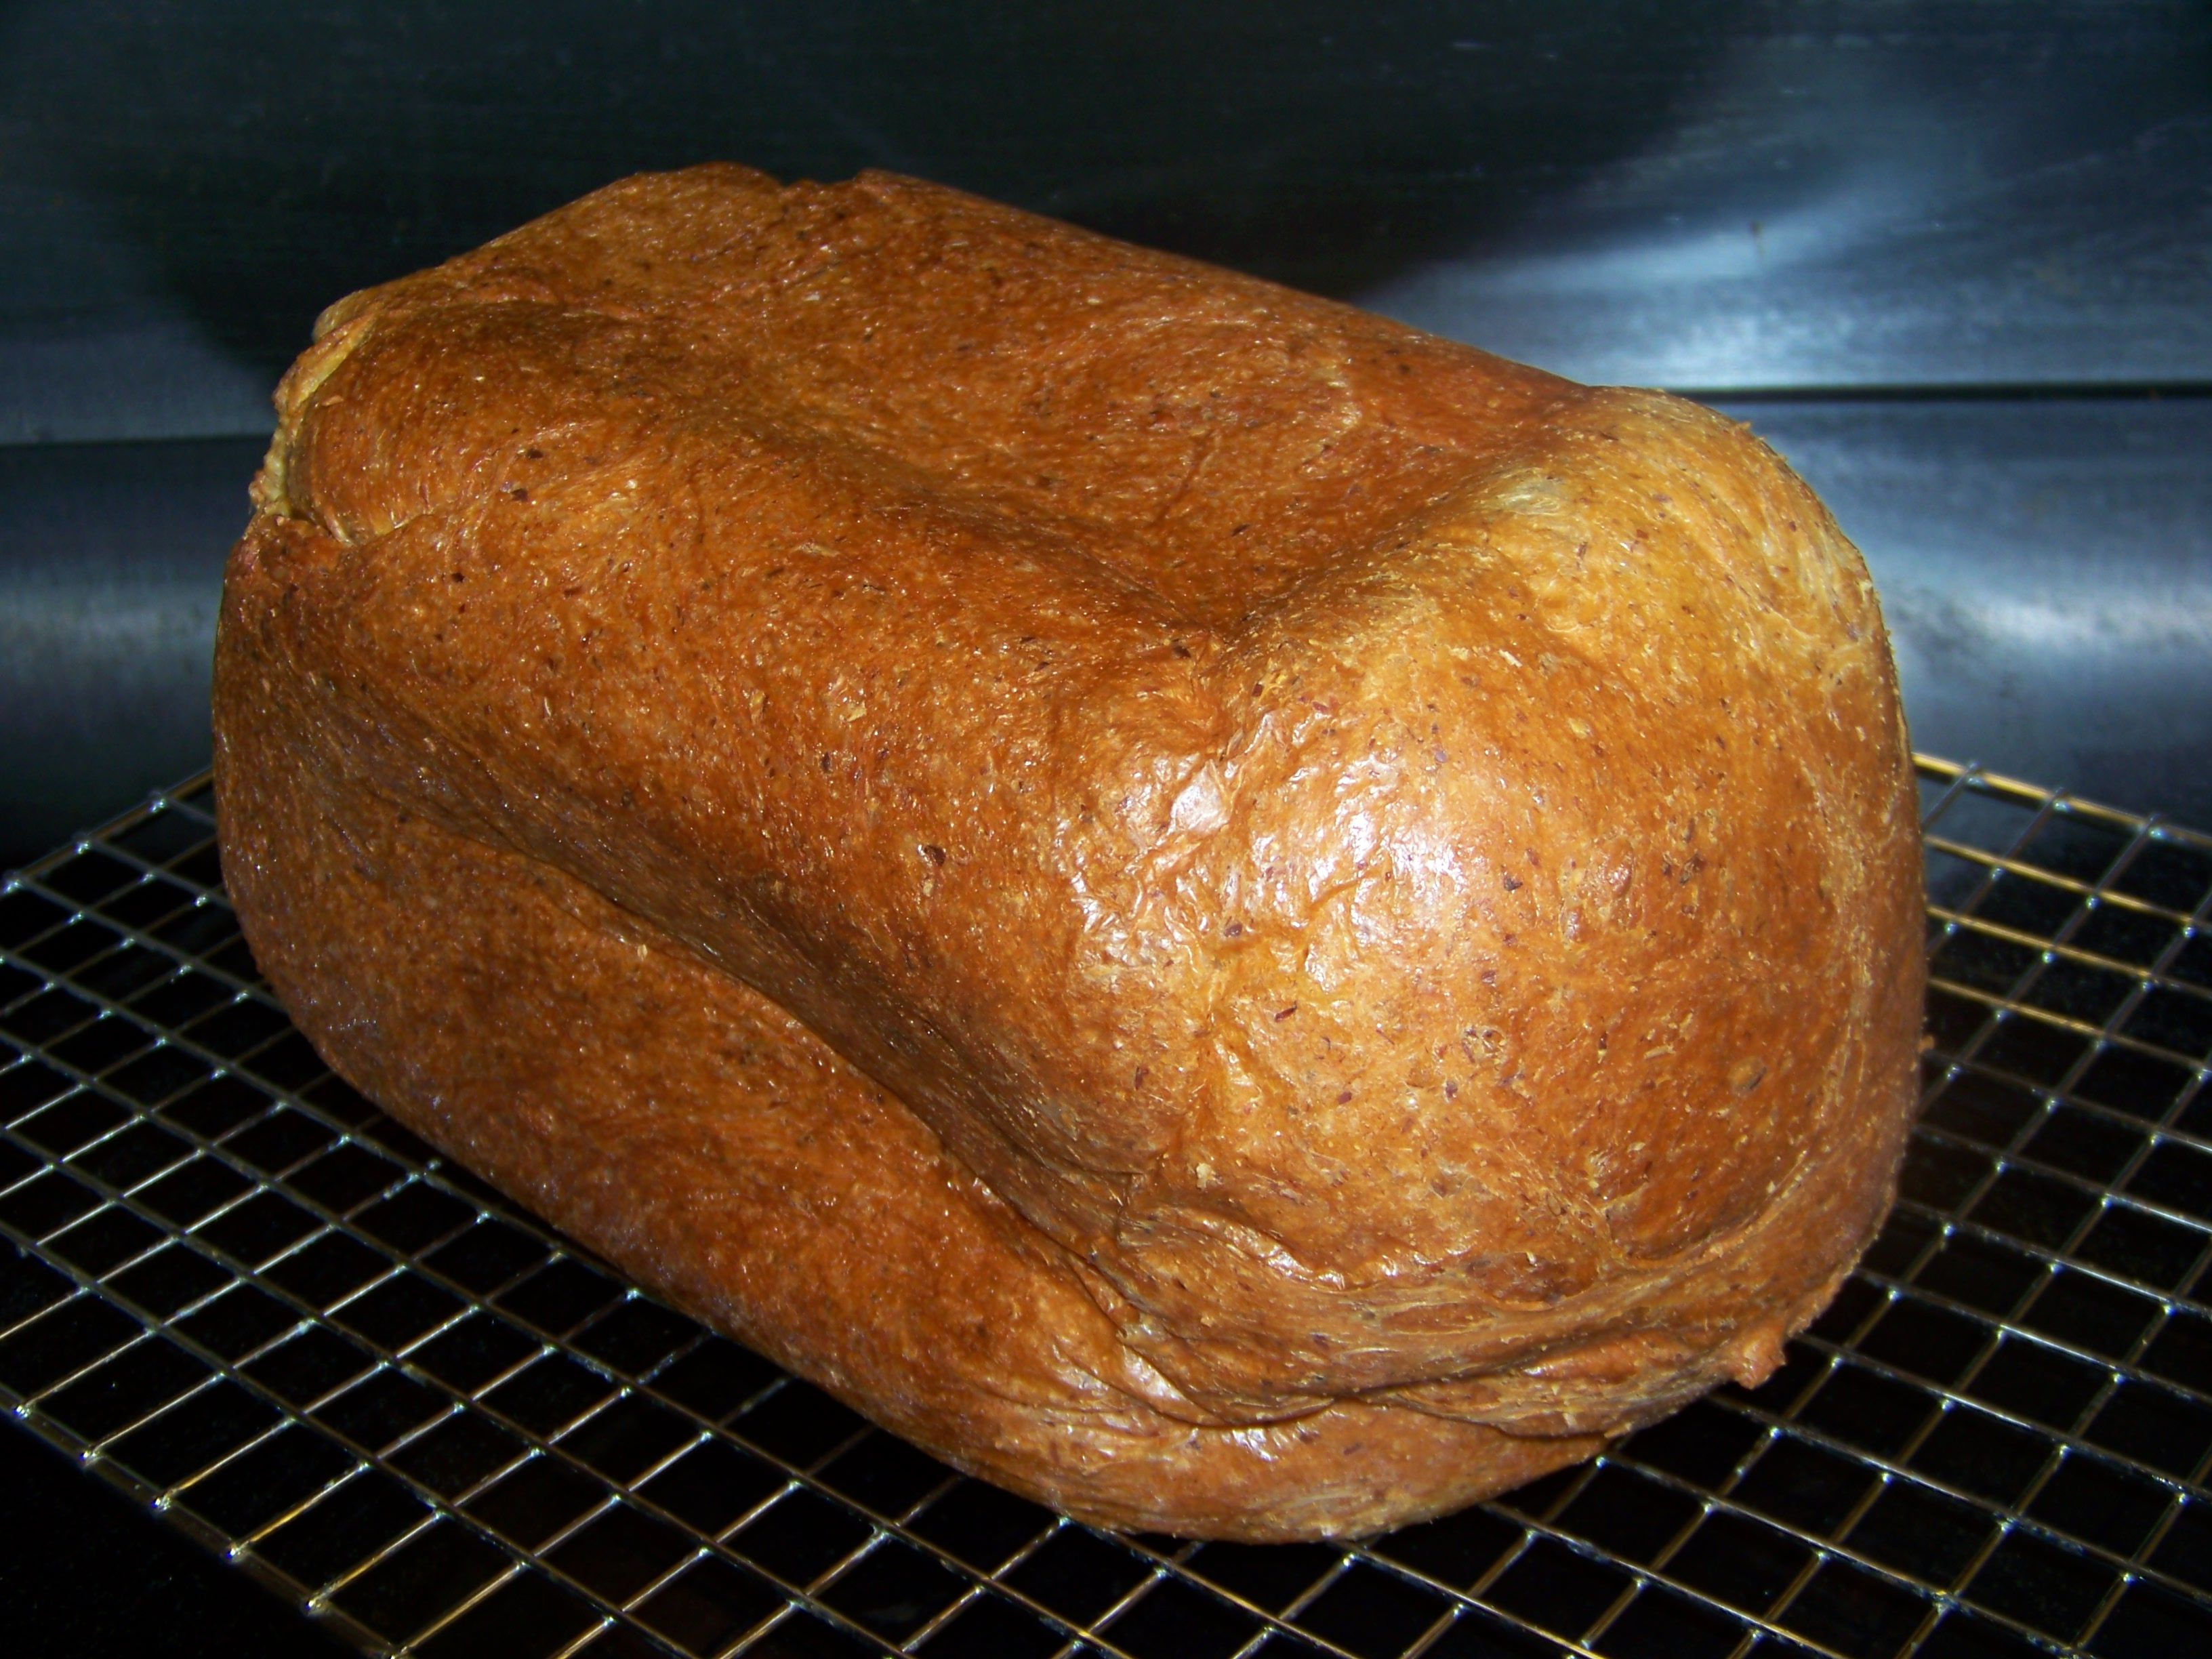 This Is The Best Homemade Low Carb Yeast Bread Recipe That I Have